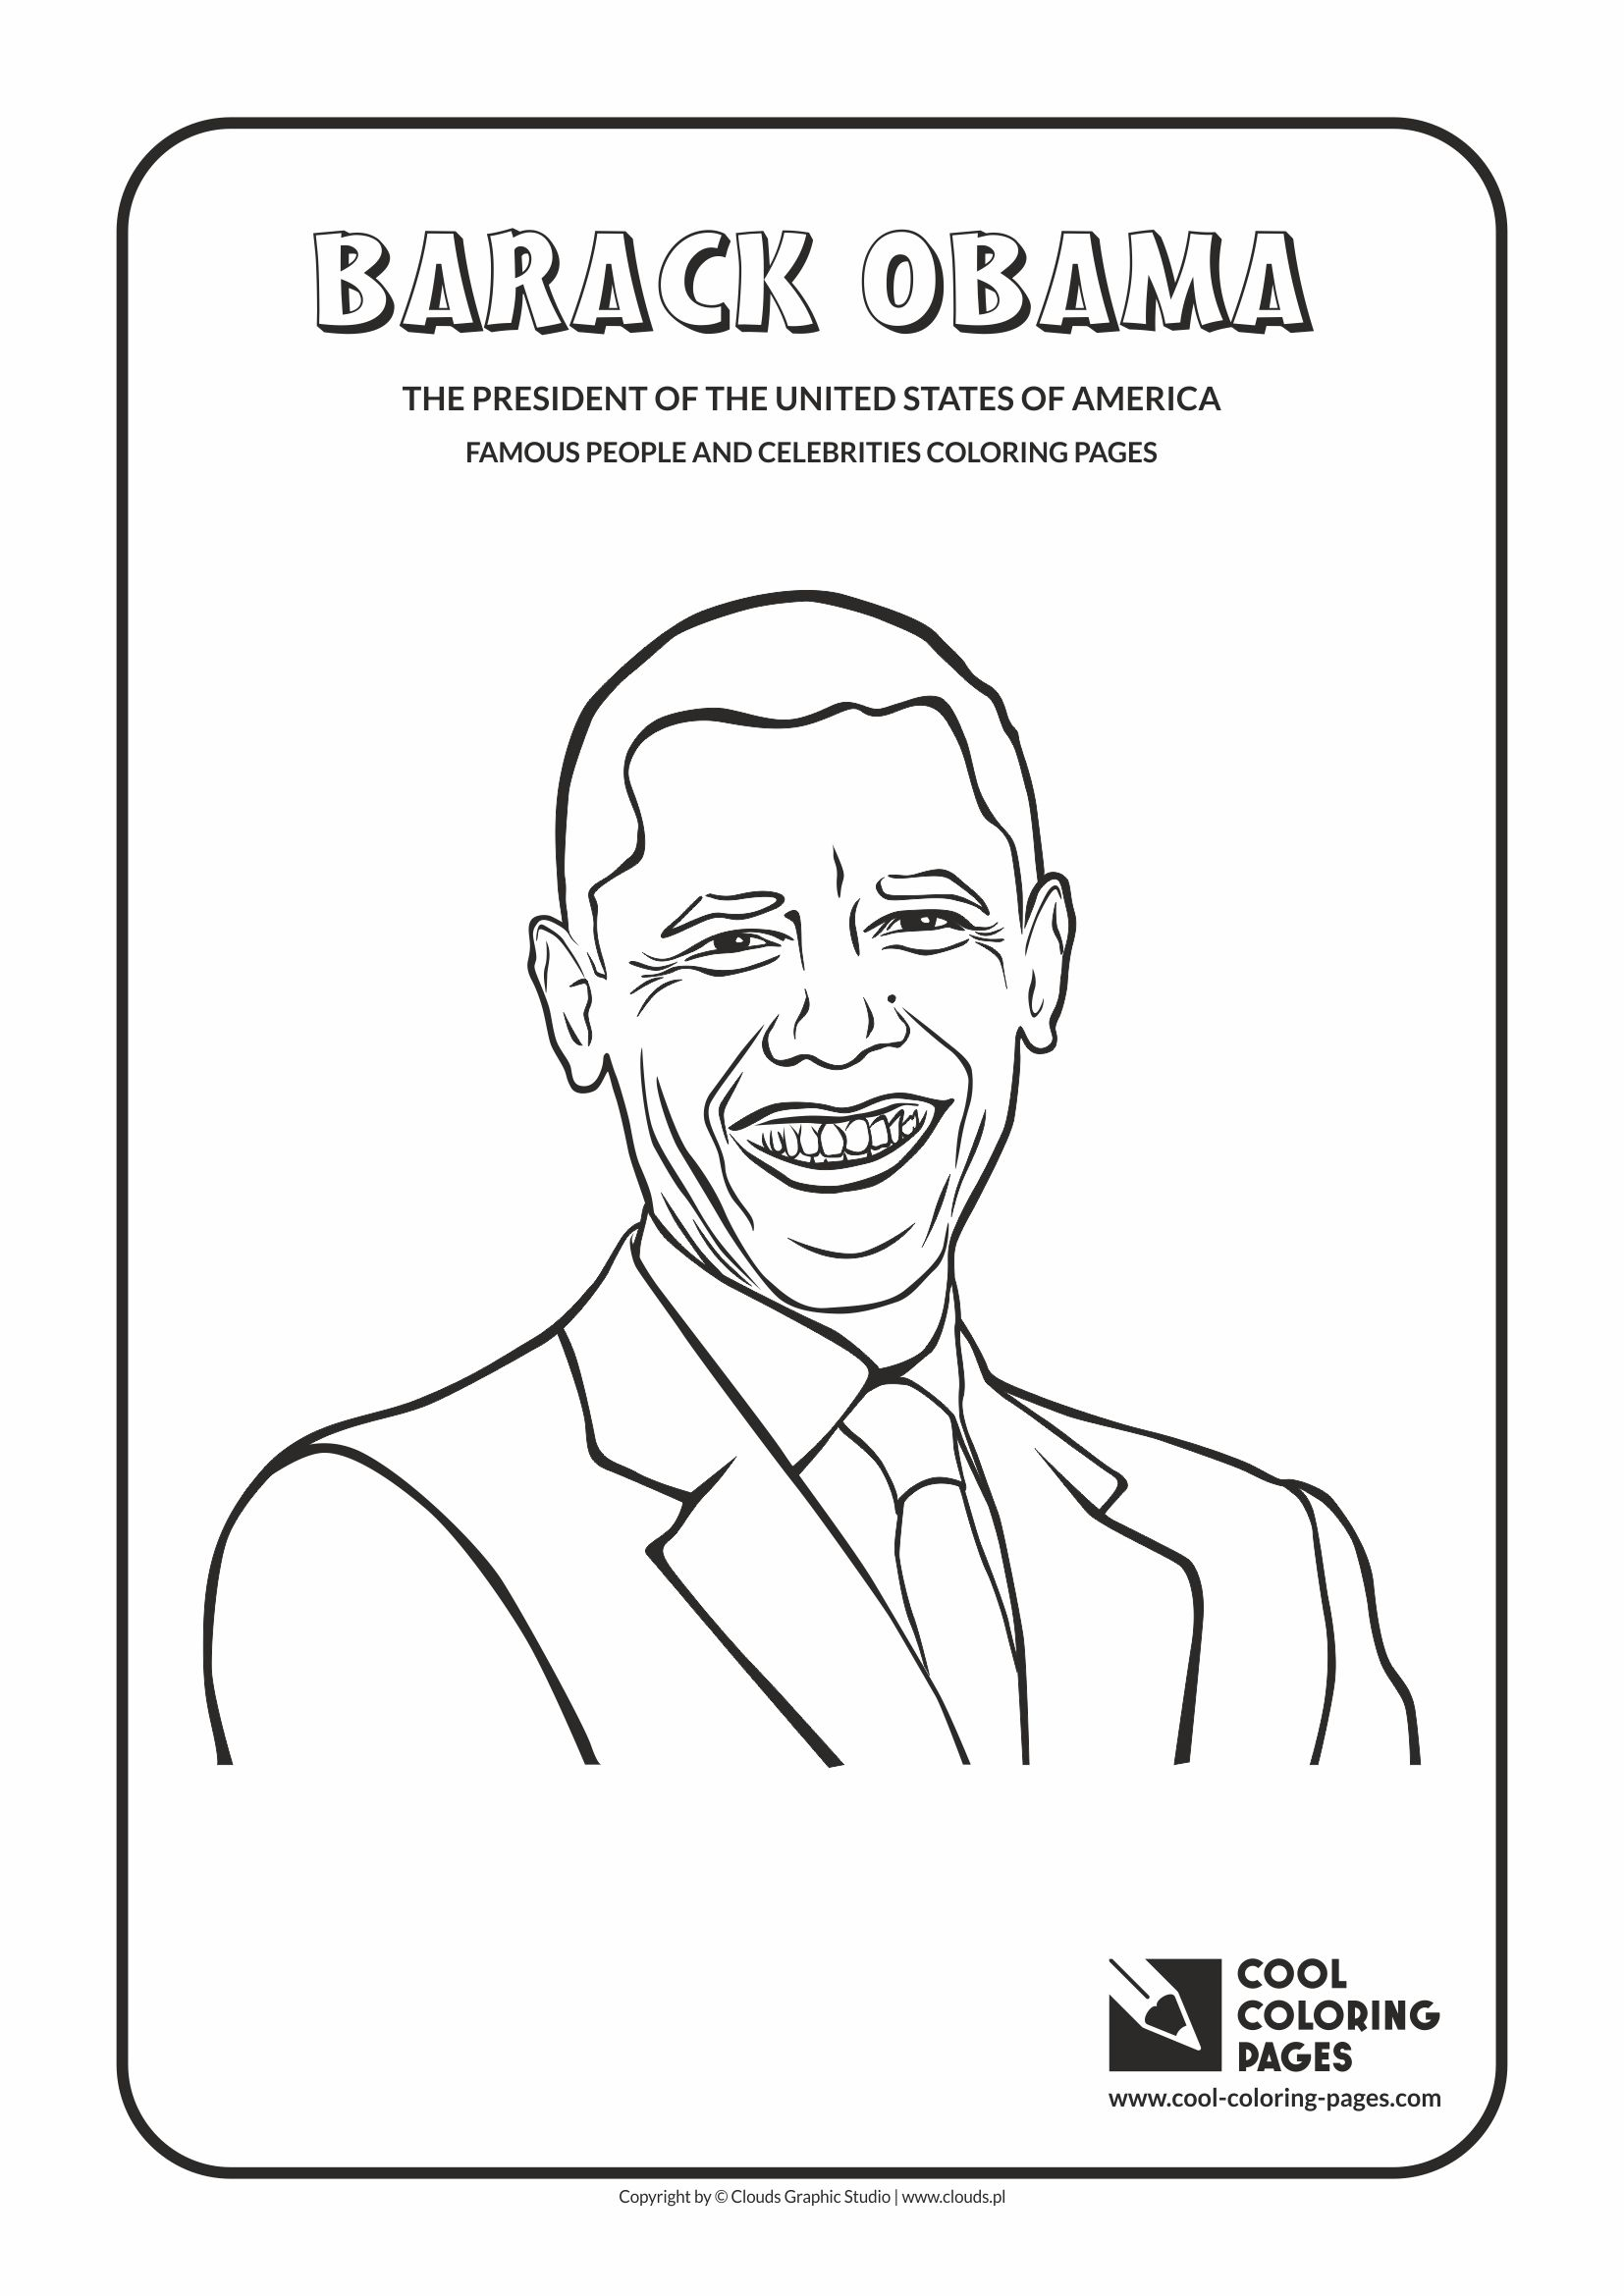 Cool Coloring Pages Famous People And Celebrities